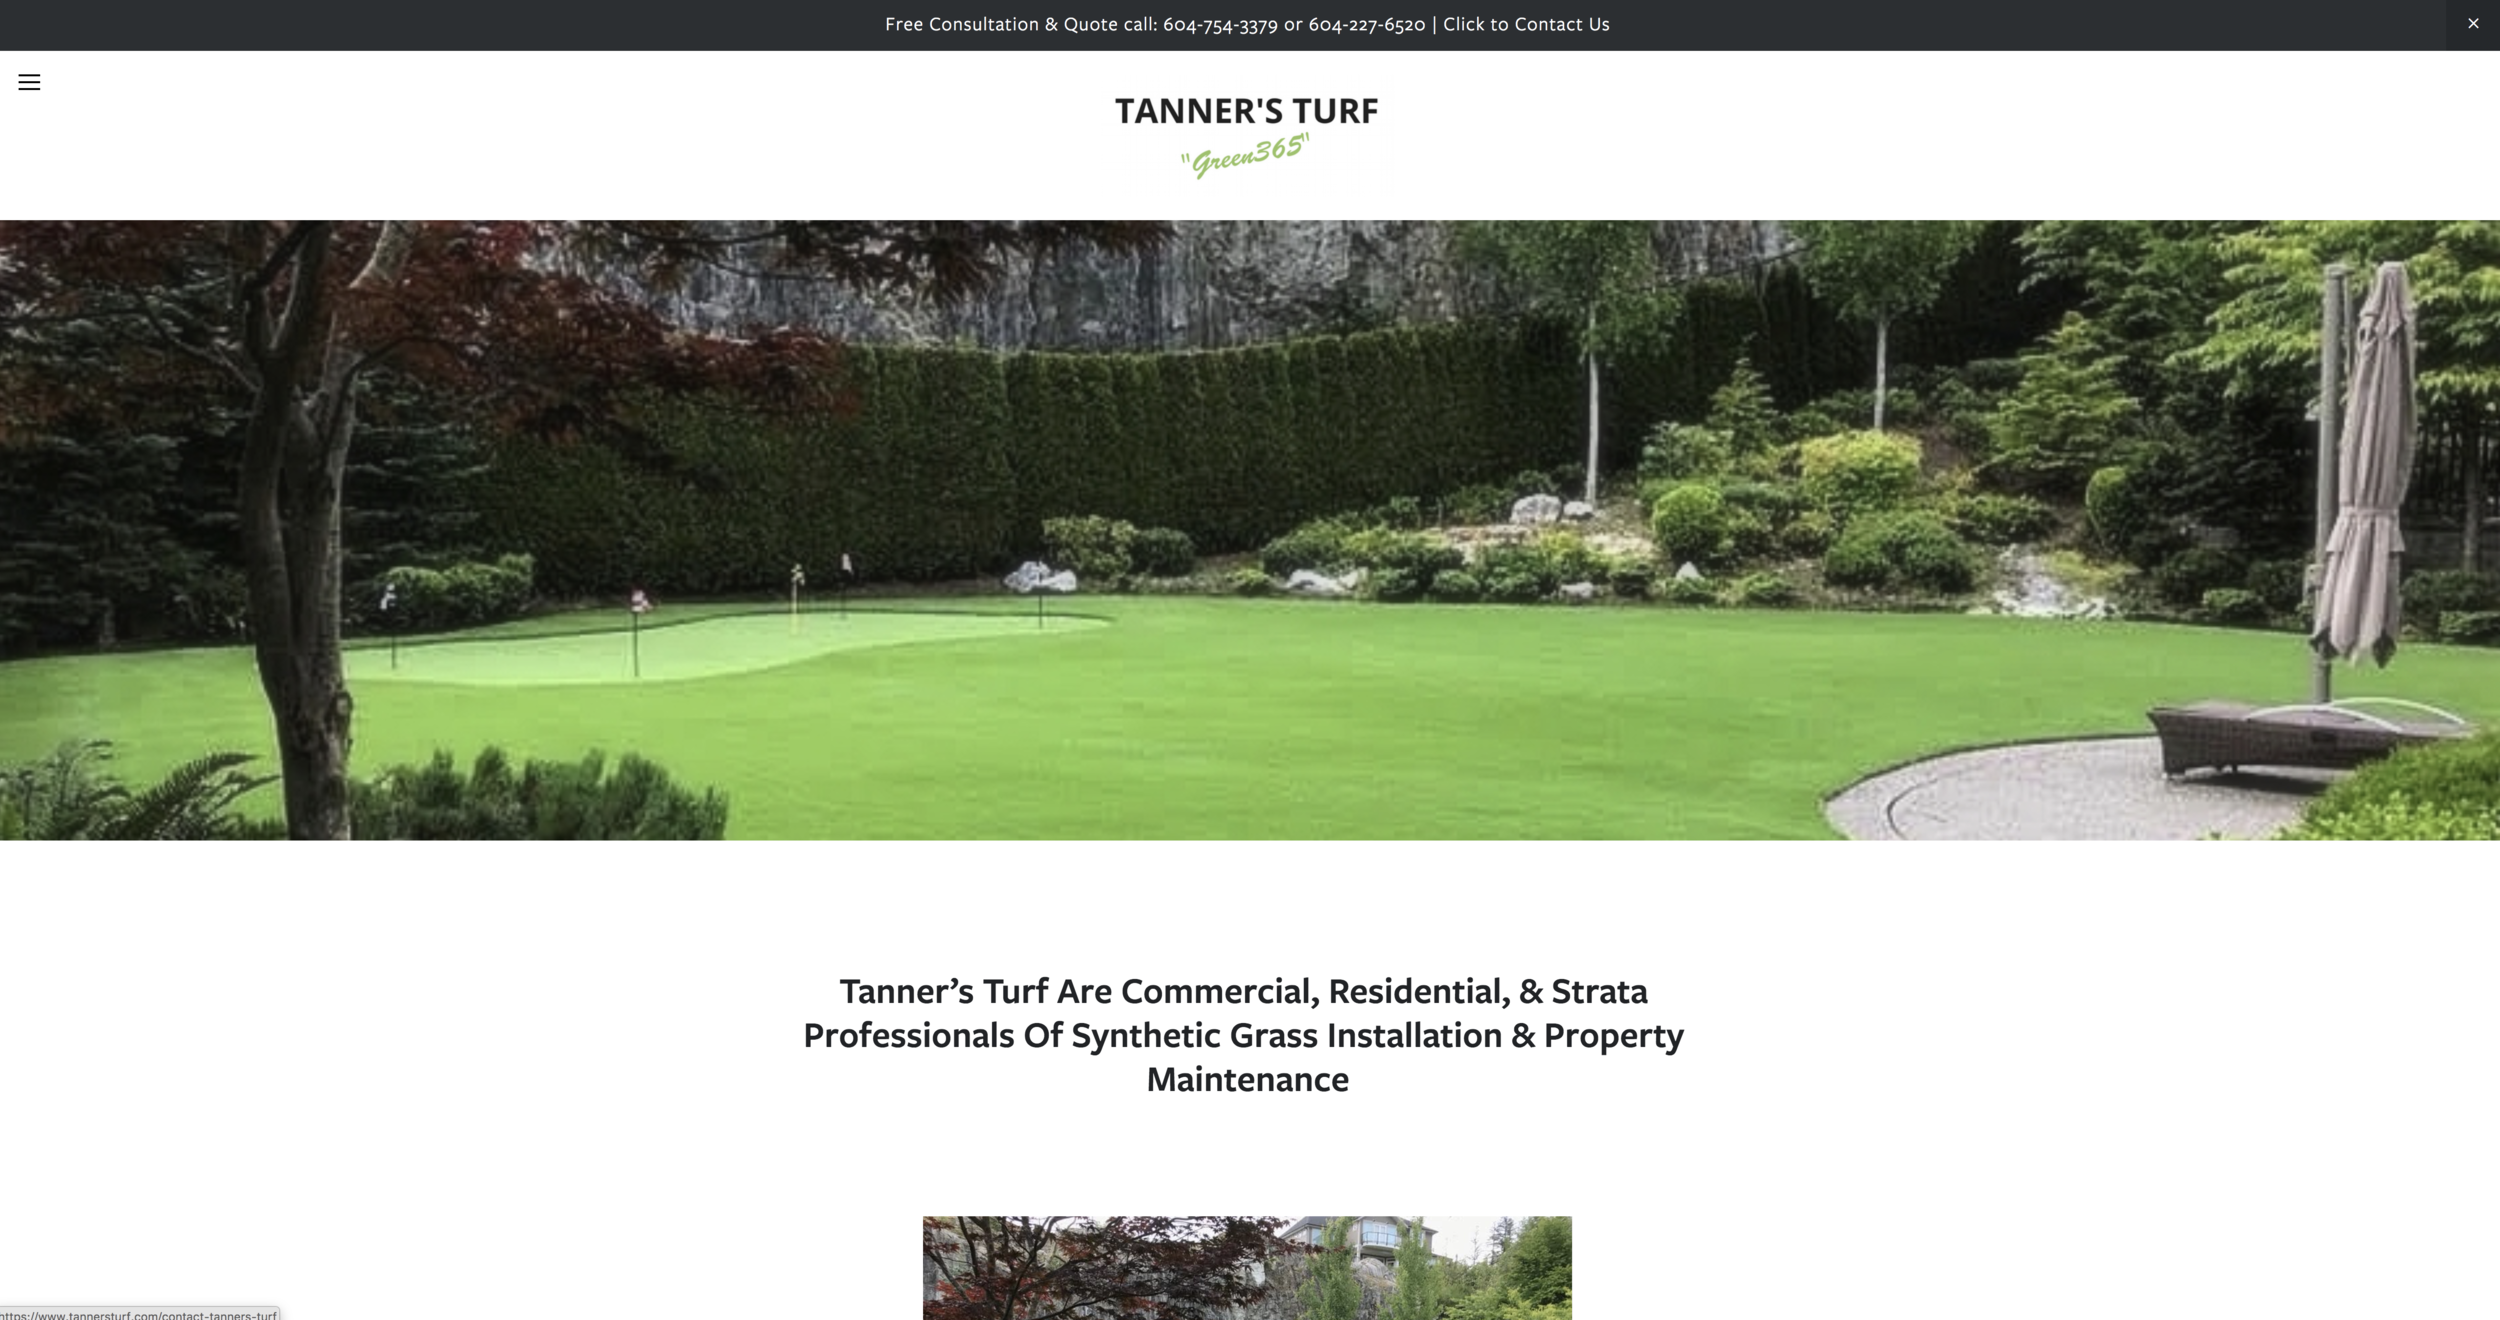 Tanner's Turf - Donna Halme Designs created a Squarespace website design for a synthetic turf installer and property maintenance company Tanner's Turf. The website design is styled like a magazine, very modern and informative with striking headlines, yet clean, easy to read, and navigate. The site also showcases all the beautiful photos of their completed projects. The main navigation is displayed neatly where, when clicked, I added an emoji of a green seedling for interest to offset the dark background. By creating the Home page with the use of parallax scrolling it provides a visitor the information they are seeking quickly and easily. All social media accounts were added and the Services page displays as an image gallery on a timed slideshow. These images are linked to further information about those particular services offered. As always, images and text show beautifully on all devices by the incorporation of responsive design. I also customized index page titles and url slugs to gain greater search engine optimization for the website. The 'Careers' page has a job description for available positions and a secure link to their employment application form. This was created so potential applicants can add their information, upload their resume, and submit directly to the company. This was the Previous Website Design.